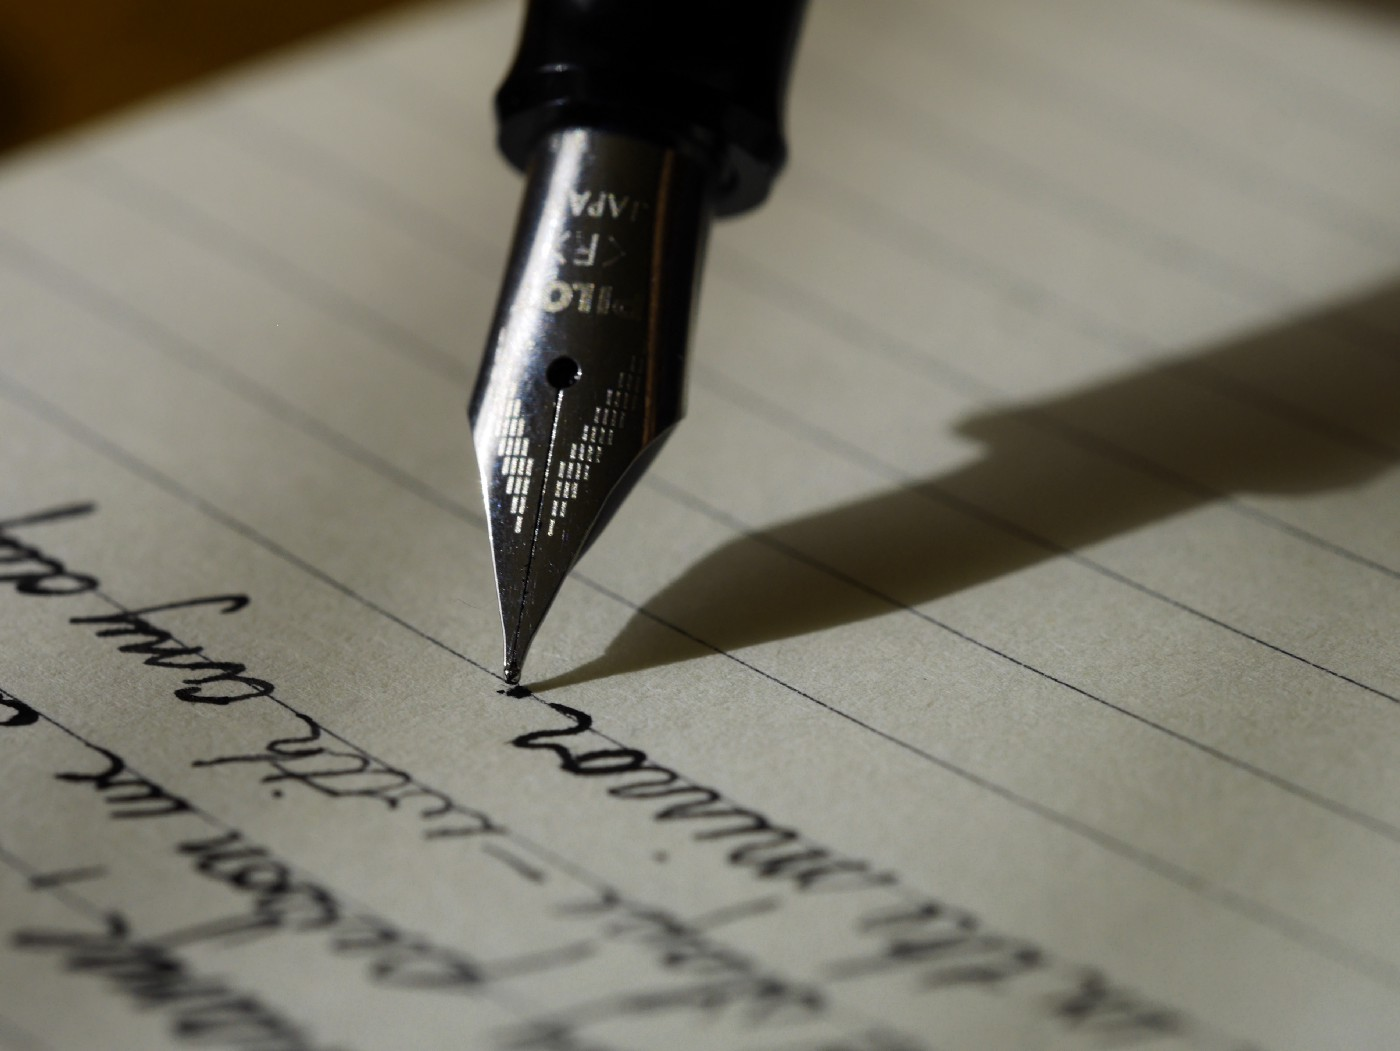 Fountain pen tip clearly visible against lined paper and the shadow clearly outlined as a reference to the human condition found written in our hearts.